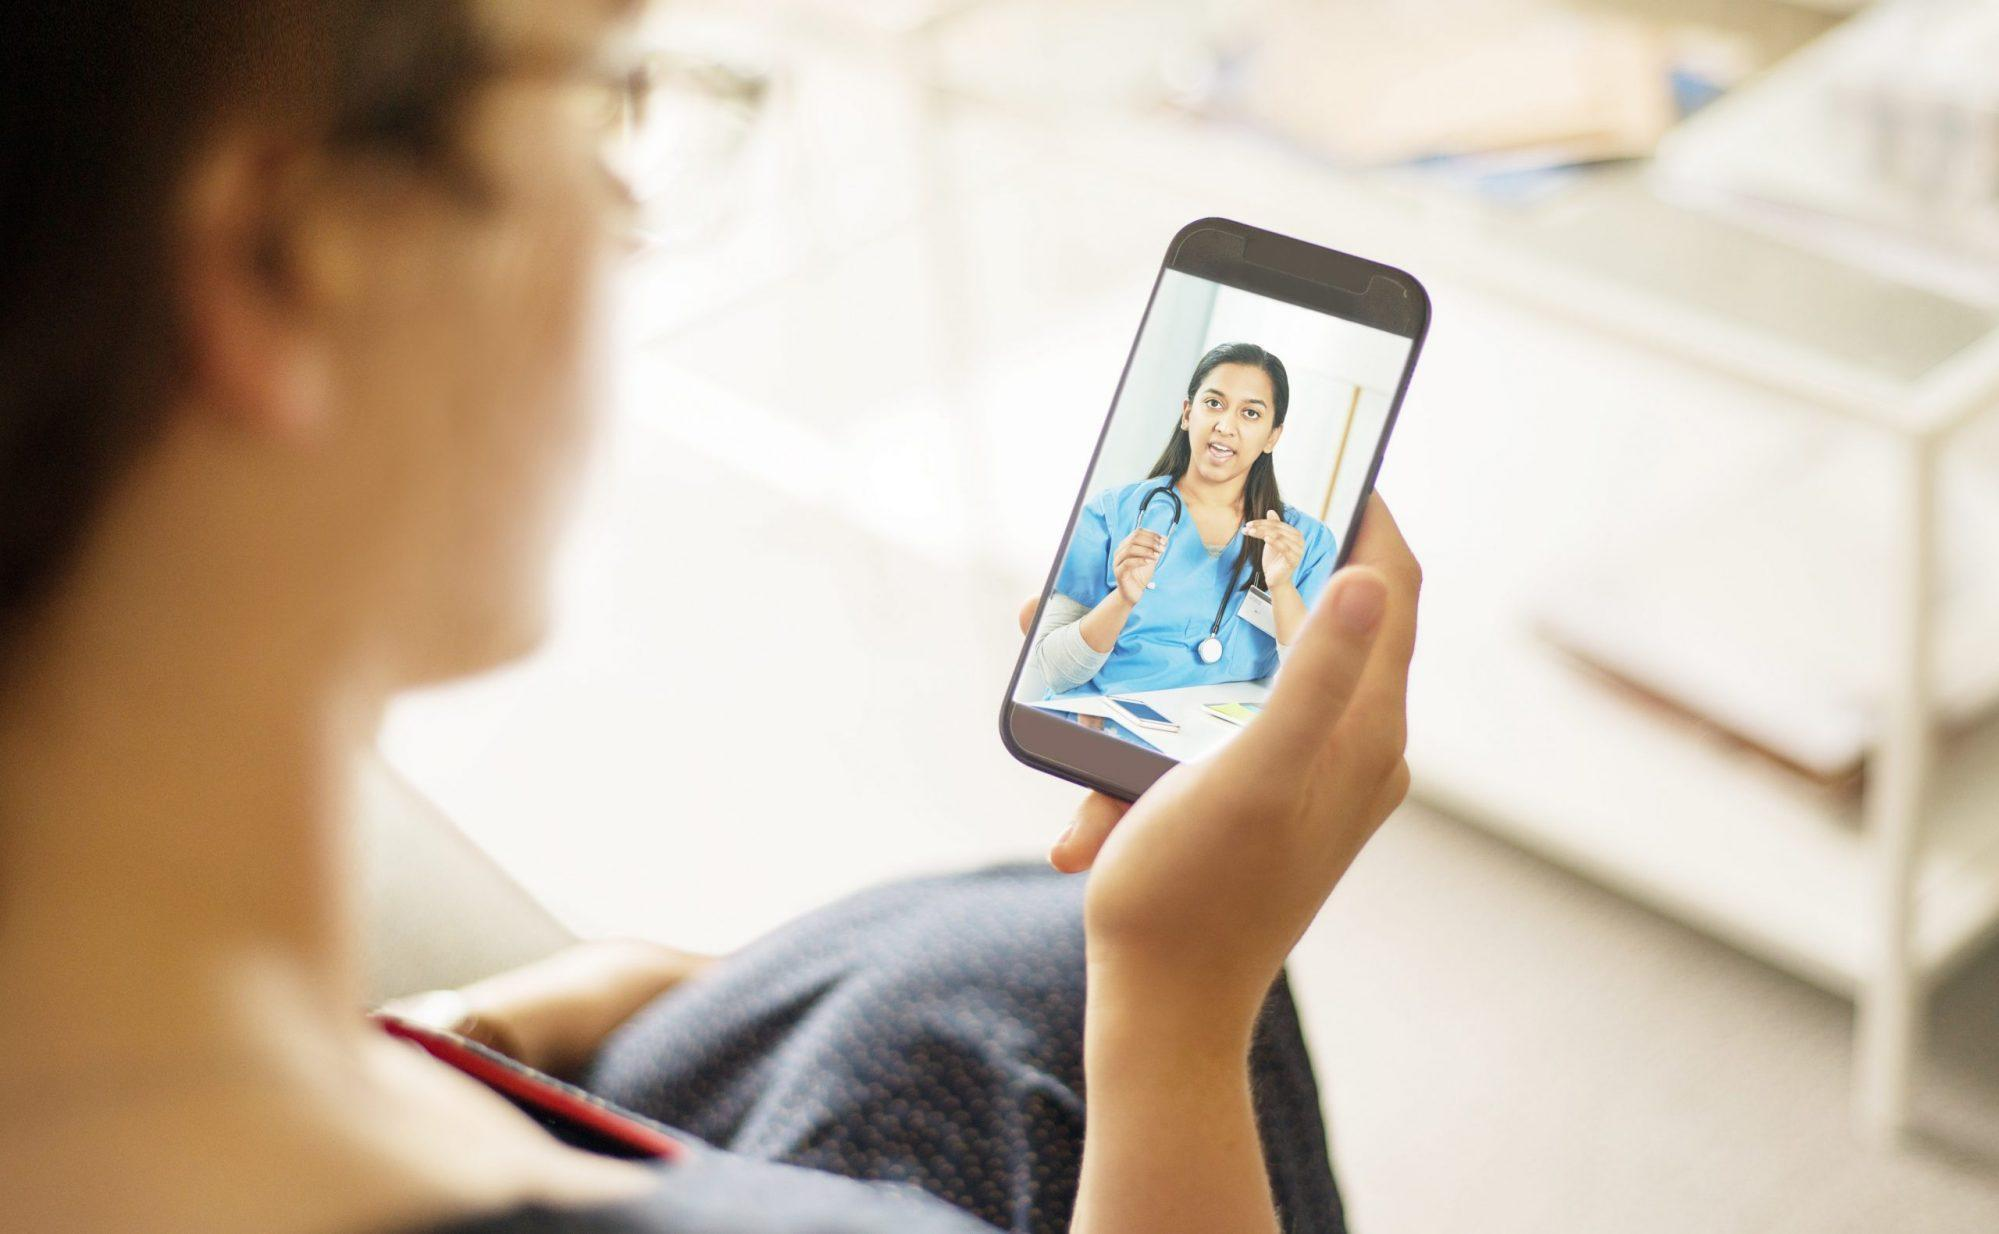 Photo of a Telemedicine Patient speaking with a medical Provider on Cell Phone. The provider is wearing blue scrubs.